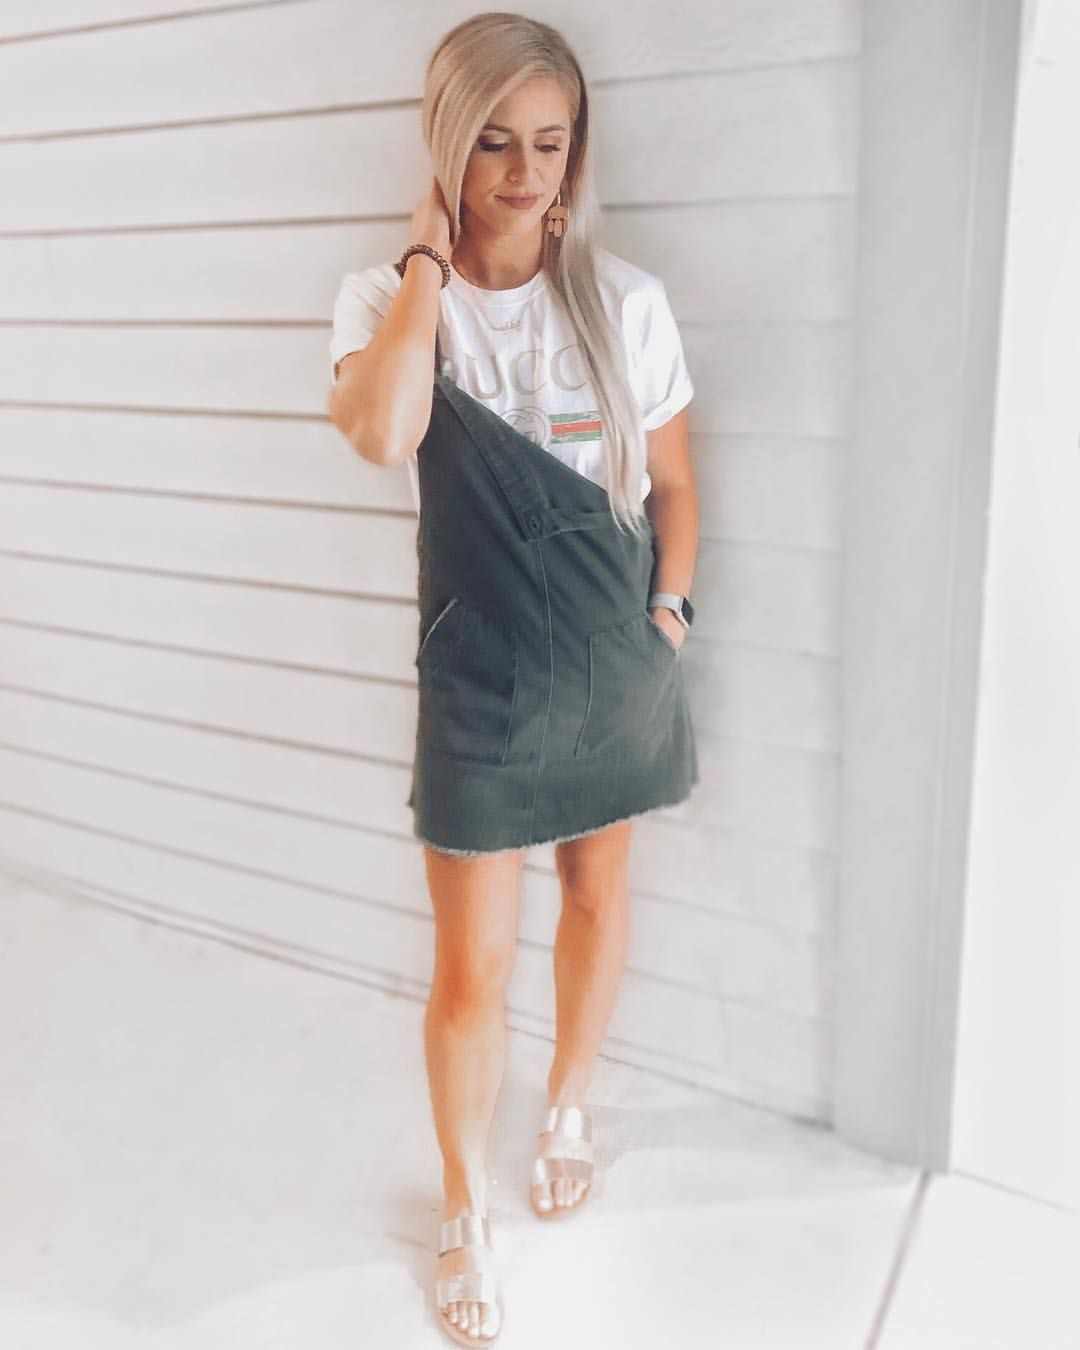 Gucci Tee Outfit Green Overall Dress Outfit Overall Dress Overalls Overall Shorts [ 1350 x 1080 Pixel ]